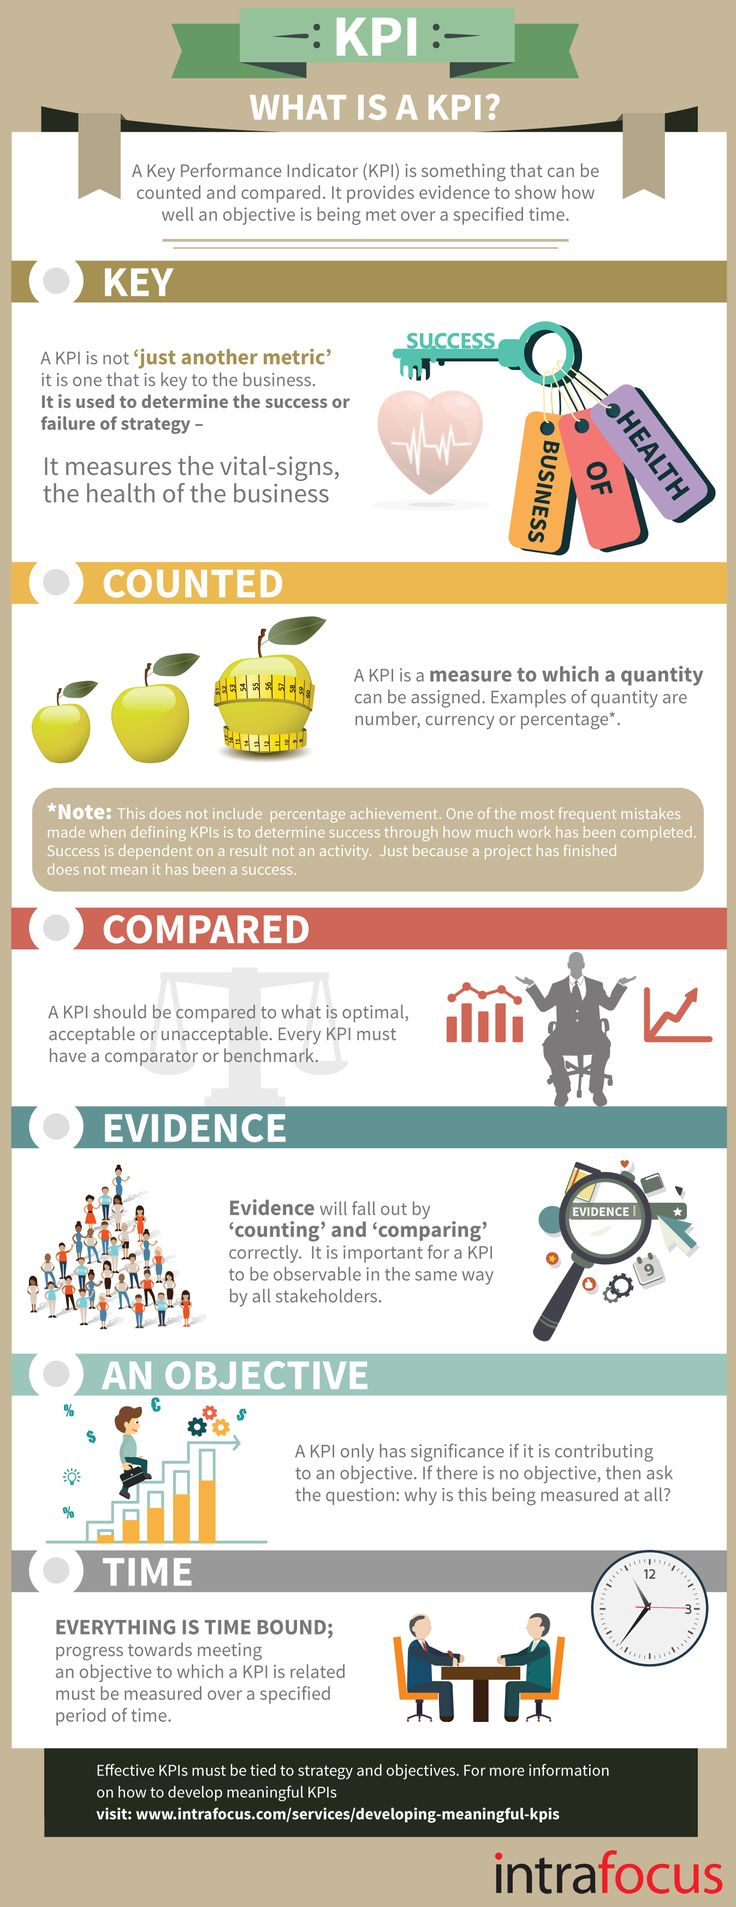 What is a KPI? #KPI KPI stands for Key Performance Indicator. The clue about its use is in the title, it is a KEY performance indicator, not an ordinary one. KPIs are used to monitor the health of a business and how well the business is tracking to its strategy #infografía